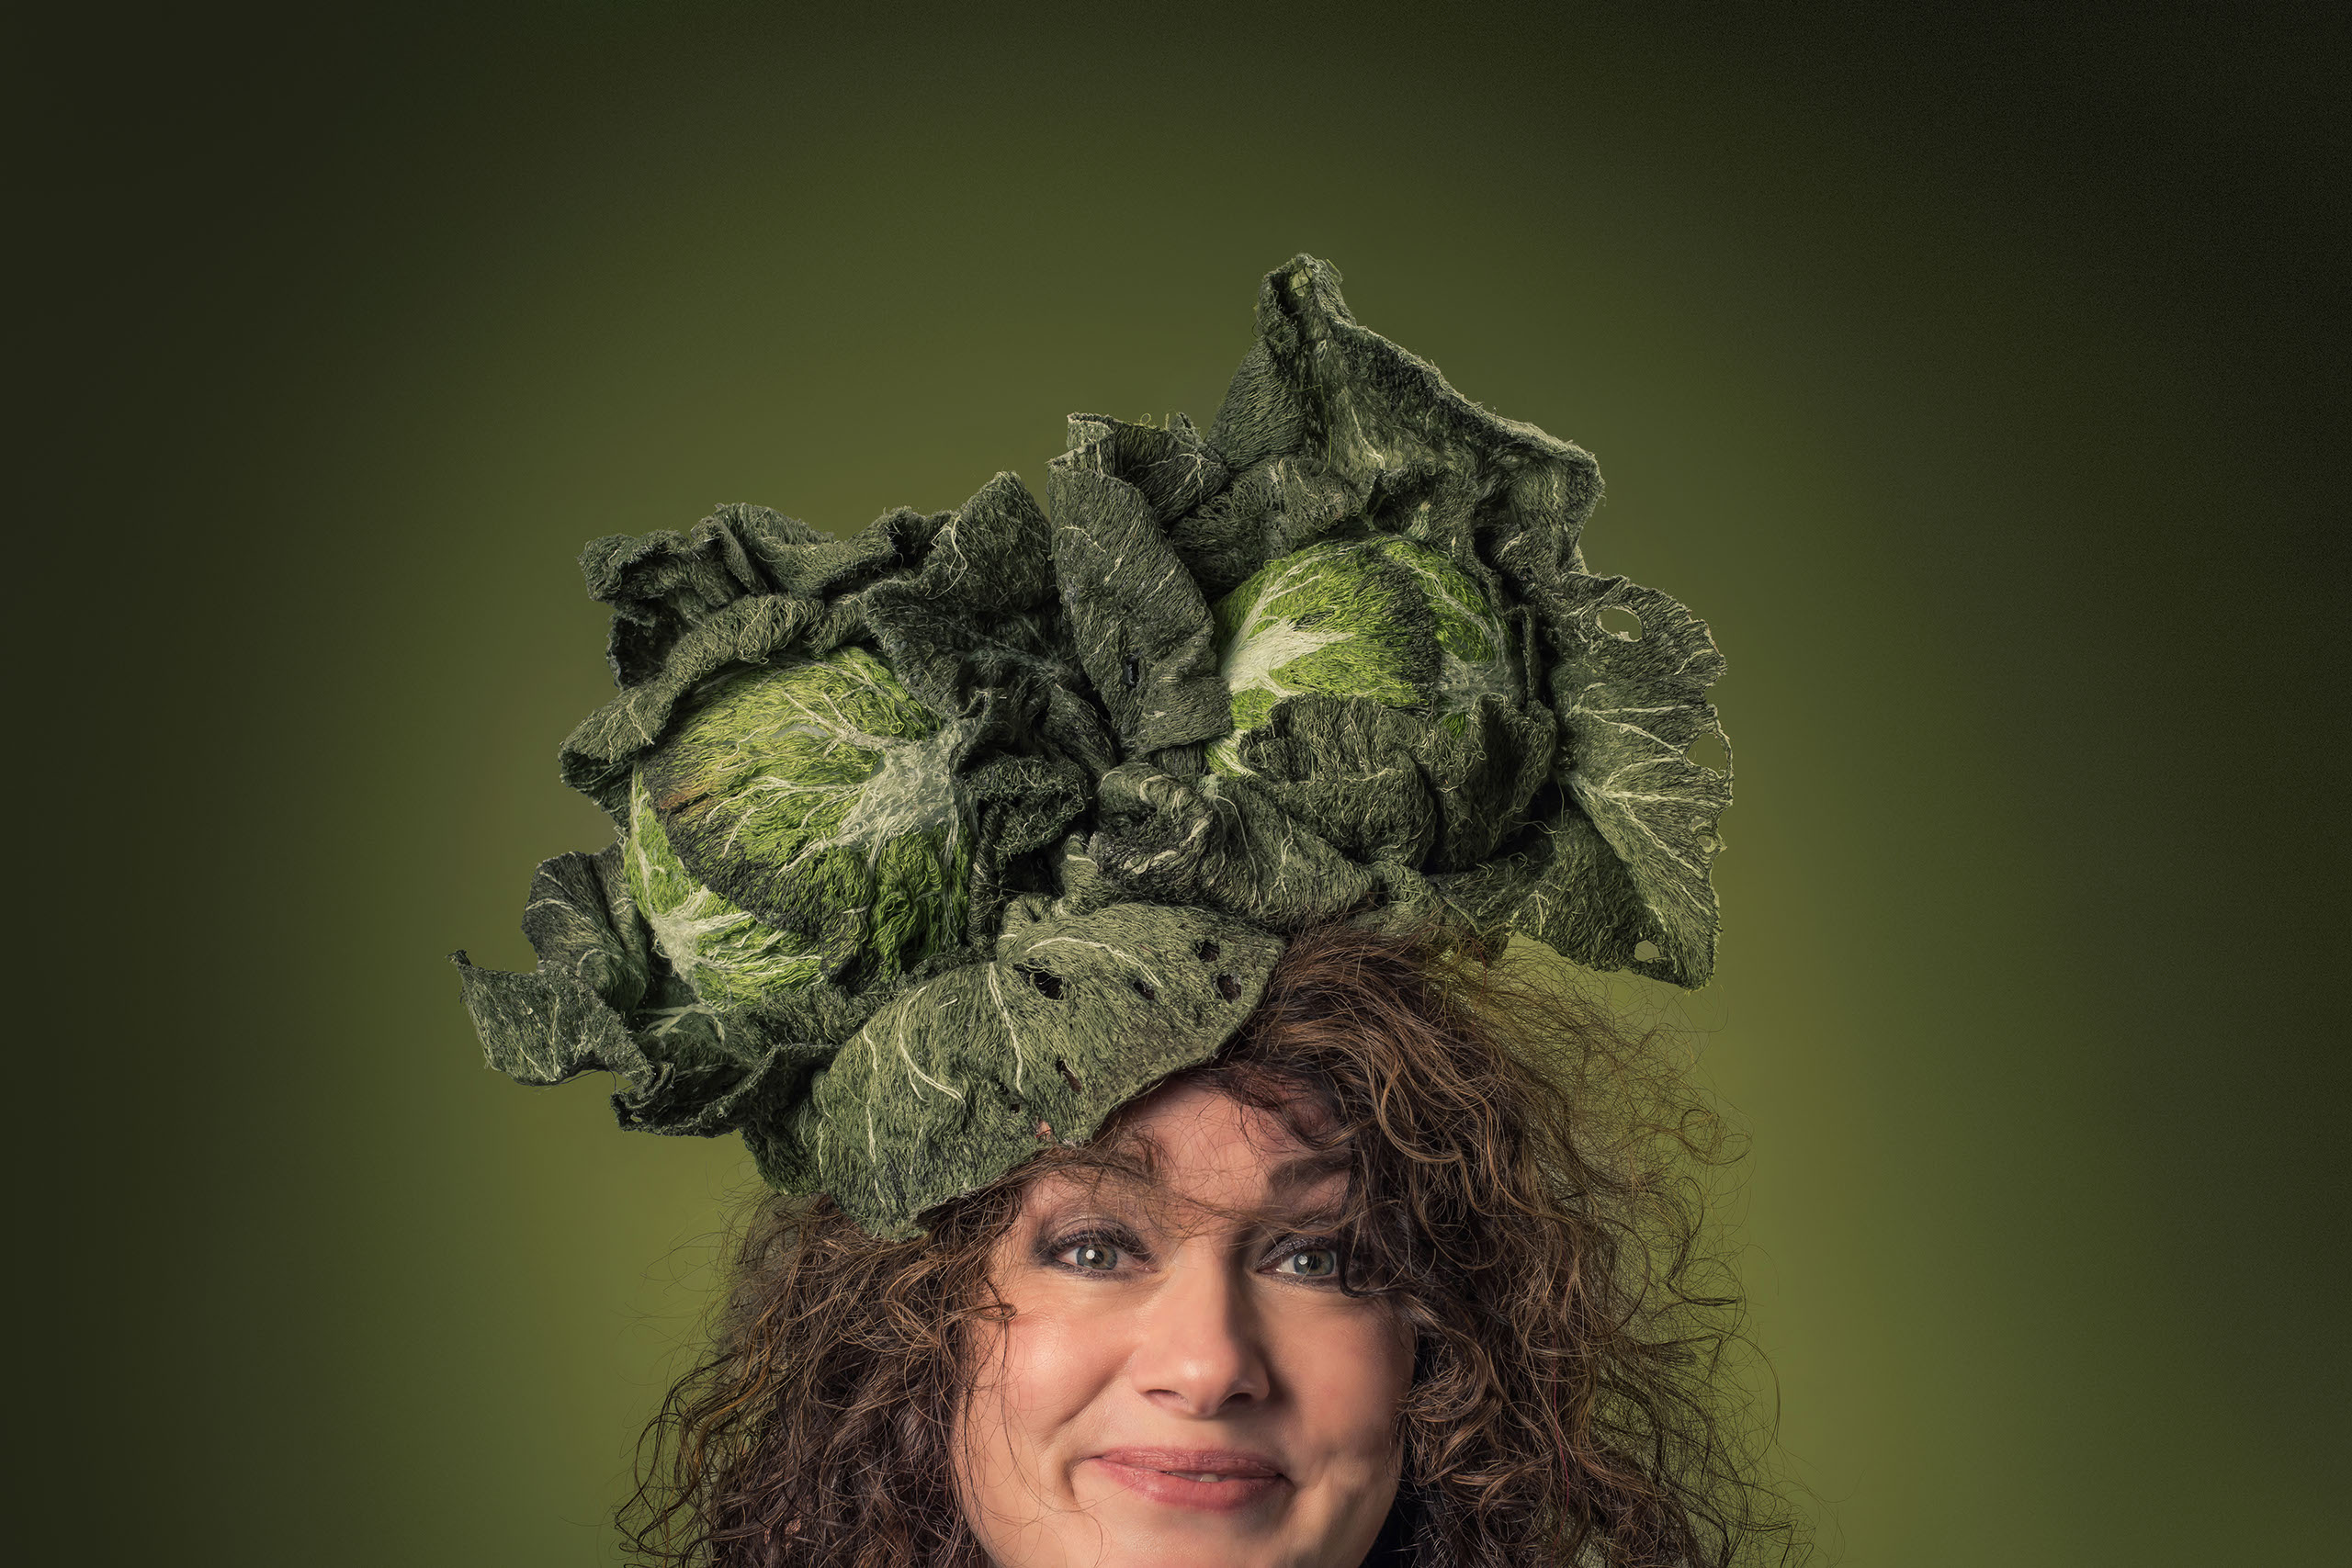 woman with a fabric cabbage on her head